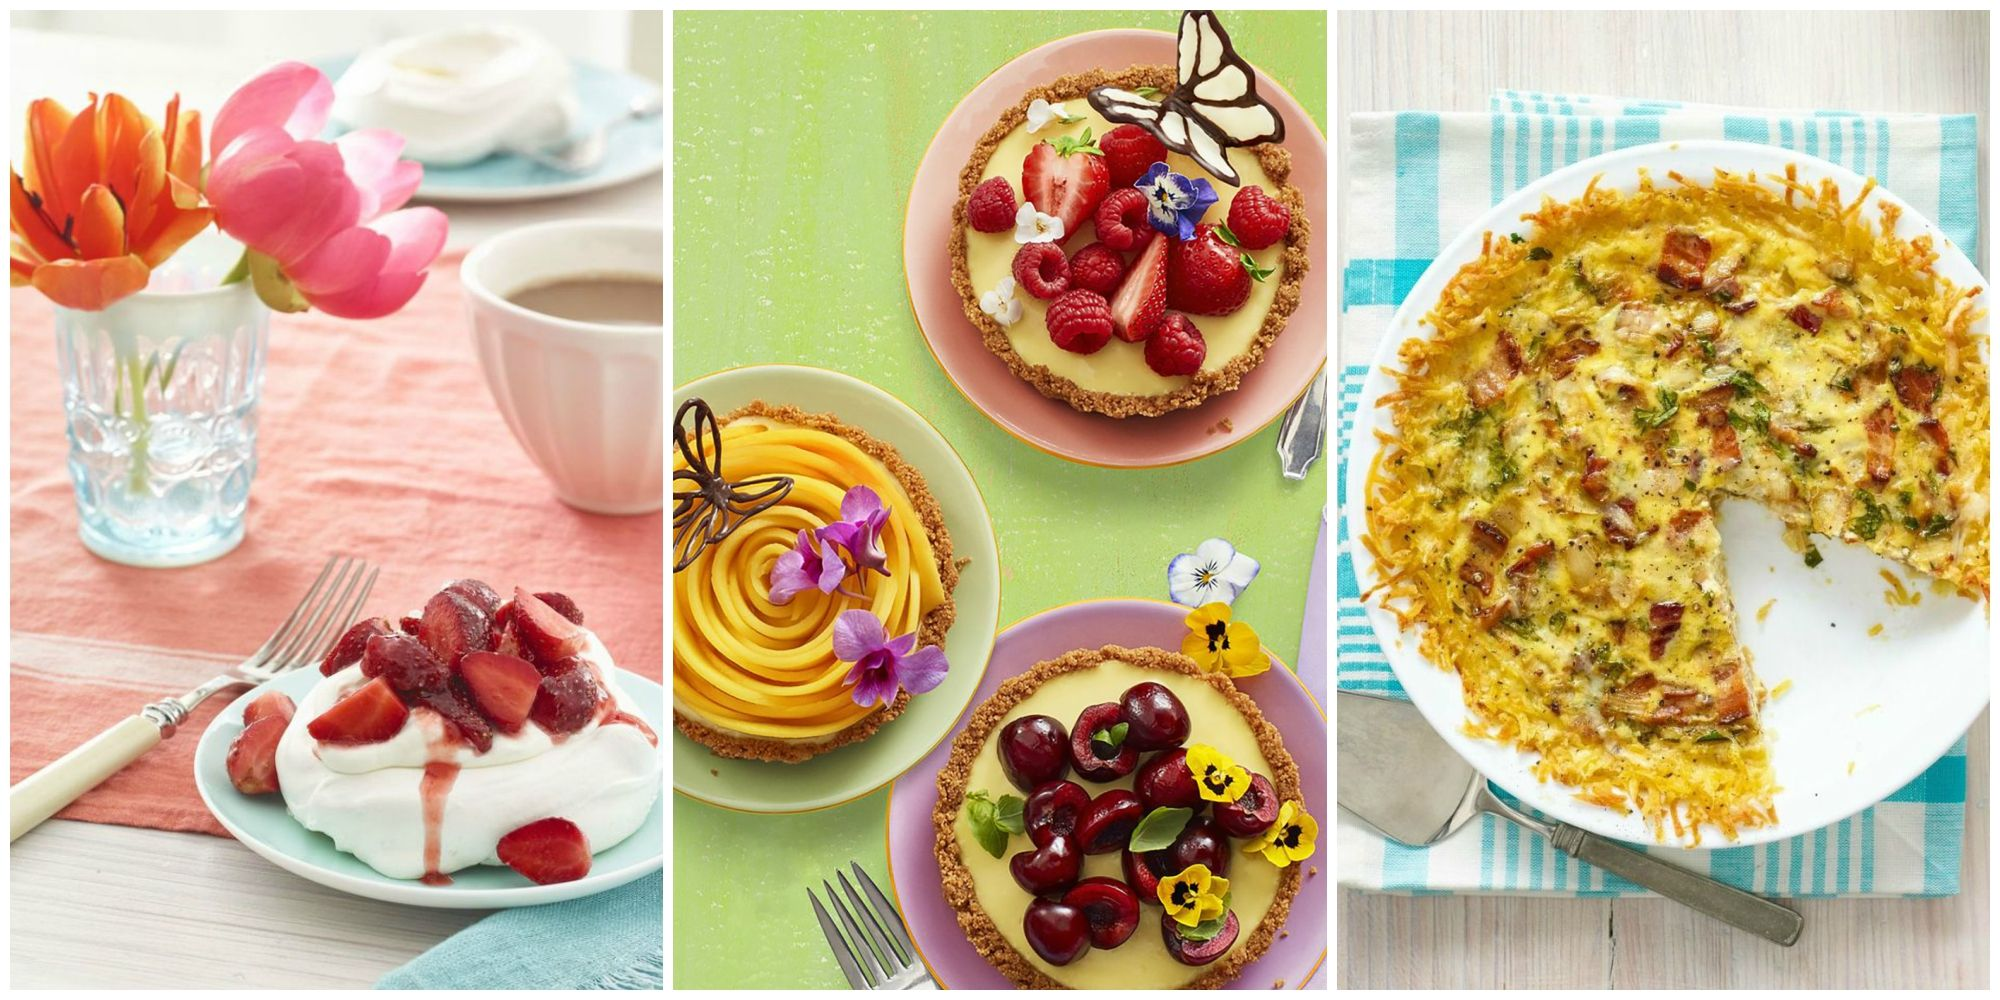 25 Mothers Day Brunch Recipes Menu Ideas For Mothers Day Brunch